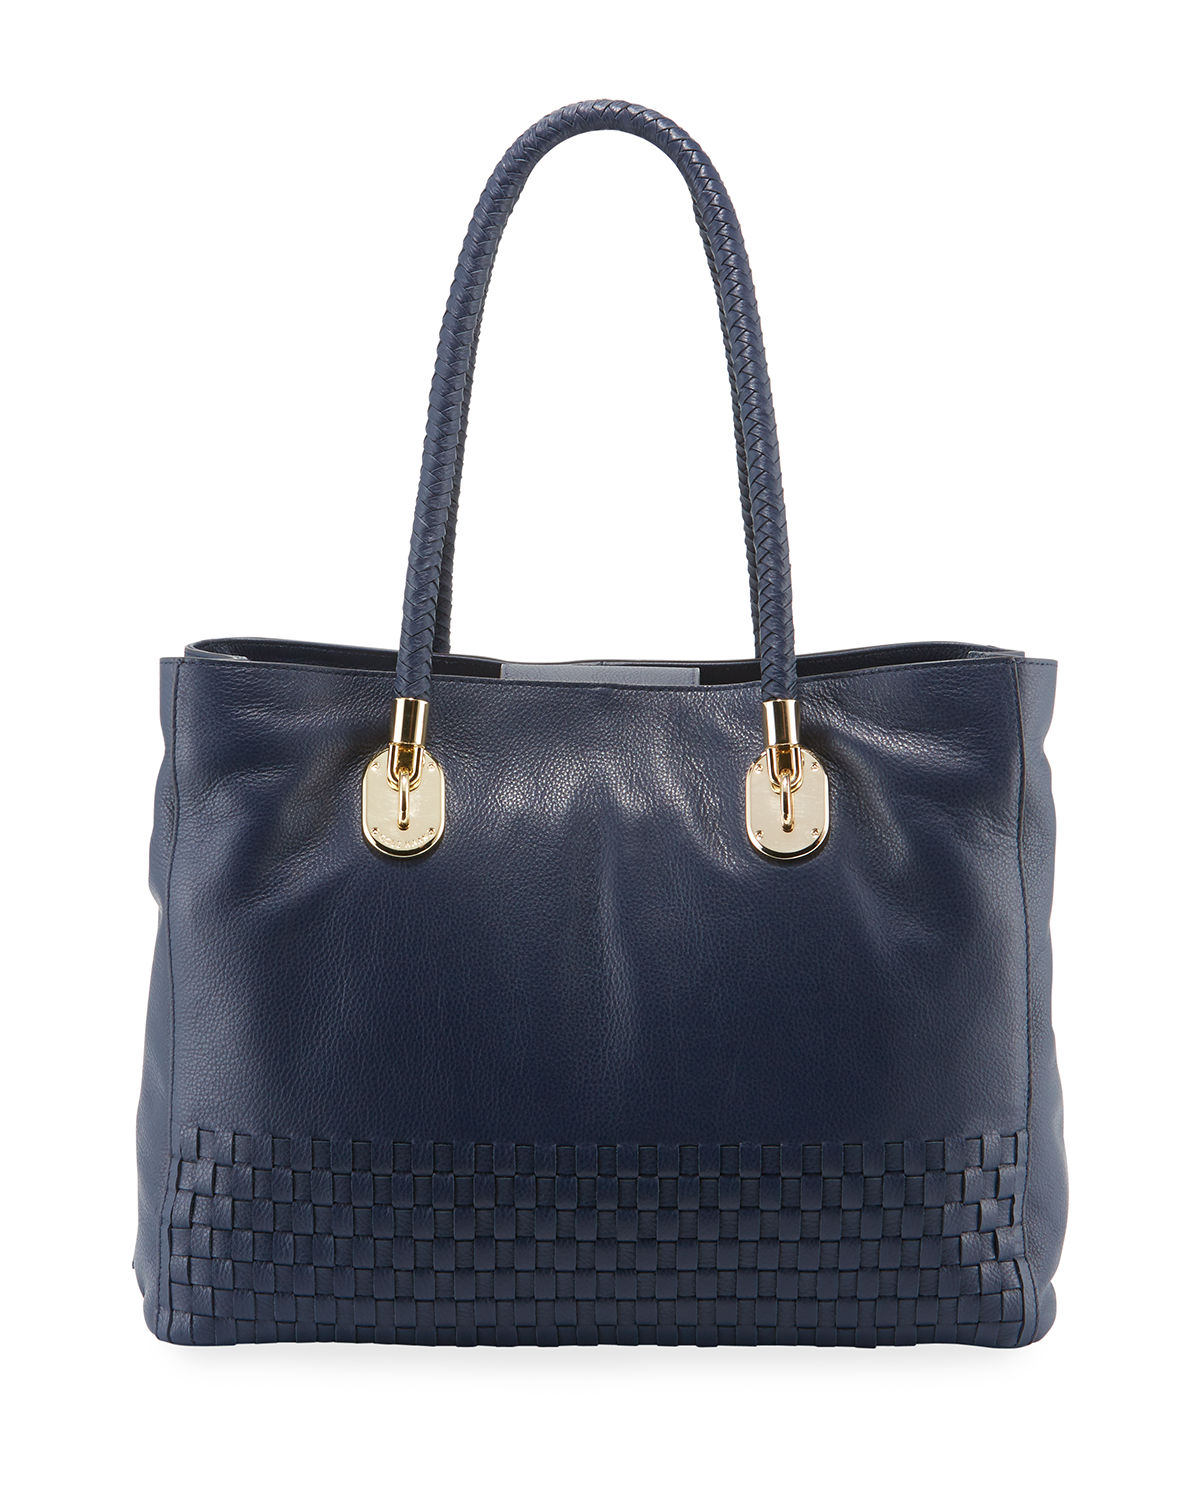 Cole Haan Totes BENSON LARGE WOVEN TOTE BAG